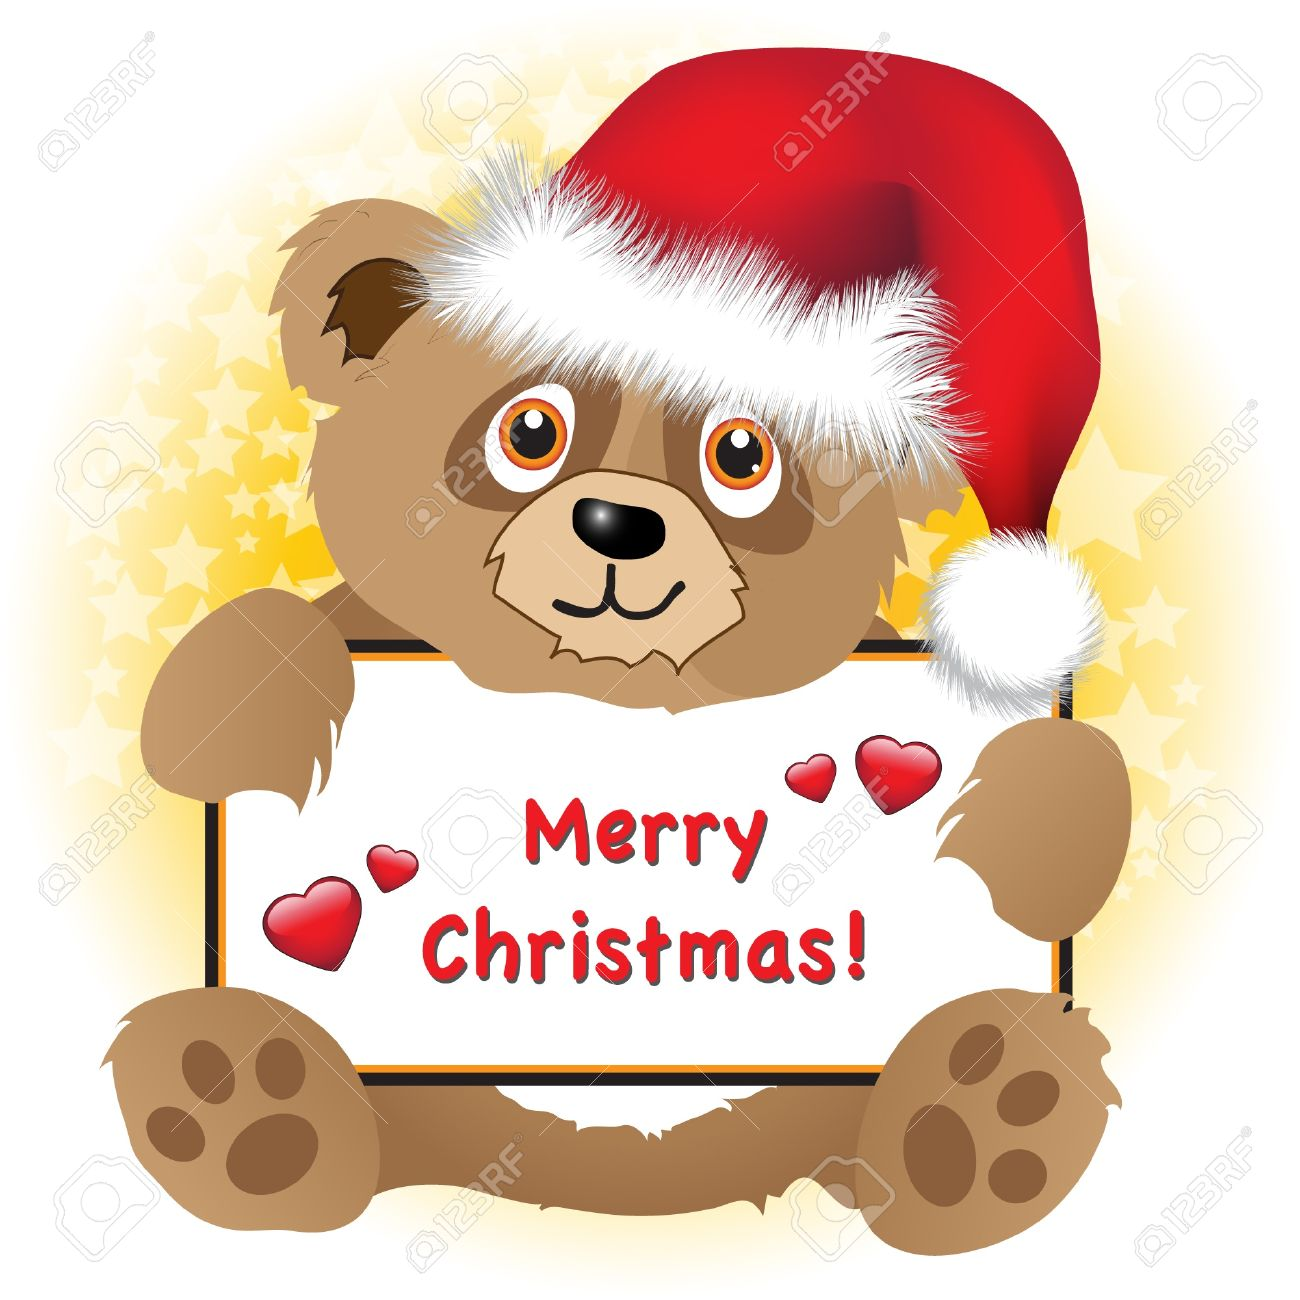 A cute cartoon Christmas bear with Santa hat holding a Merry Christmas banner with hearts Subtle star background. Stock Vector - 11031689